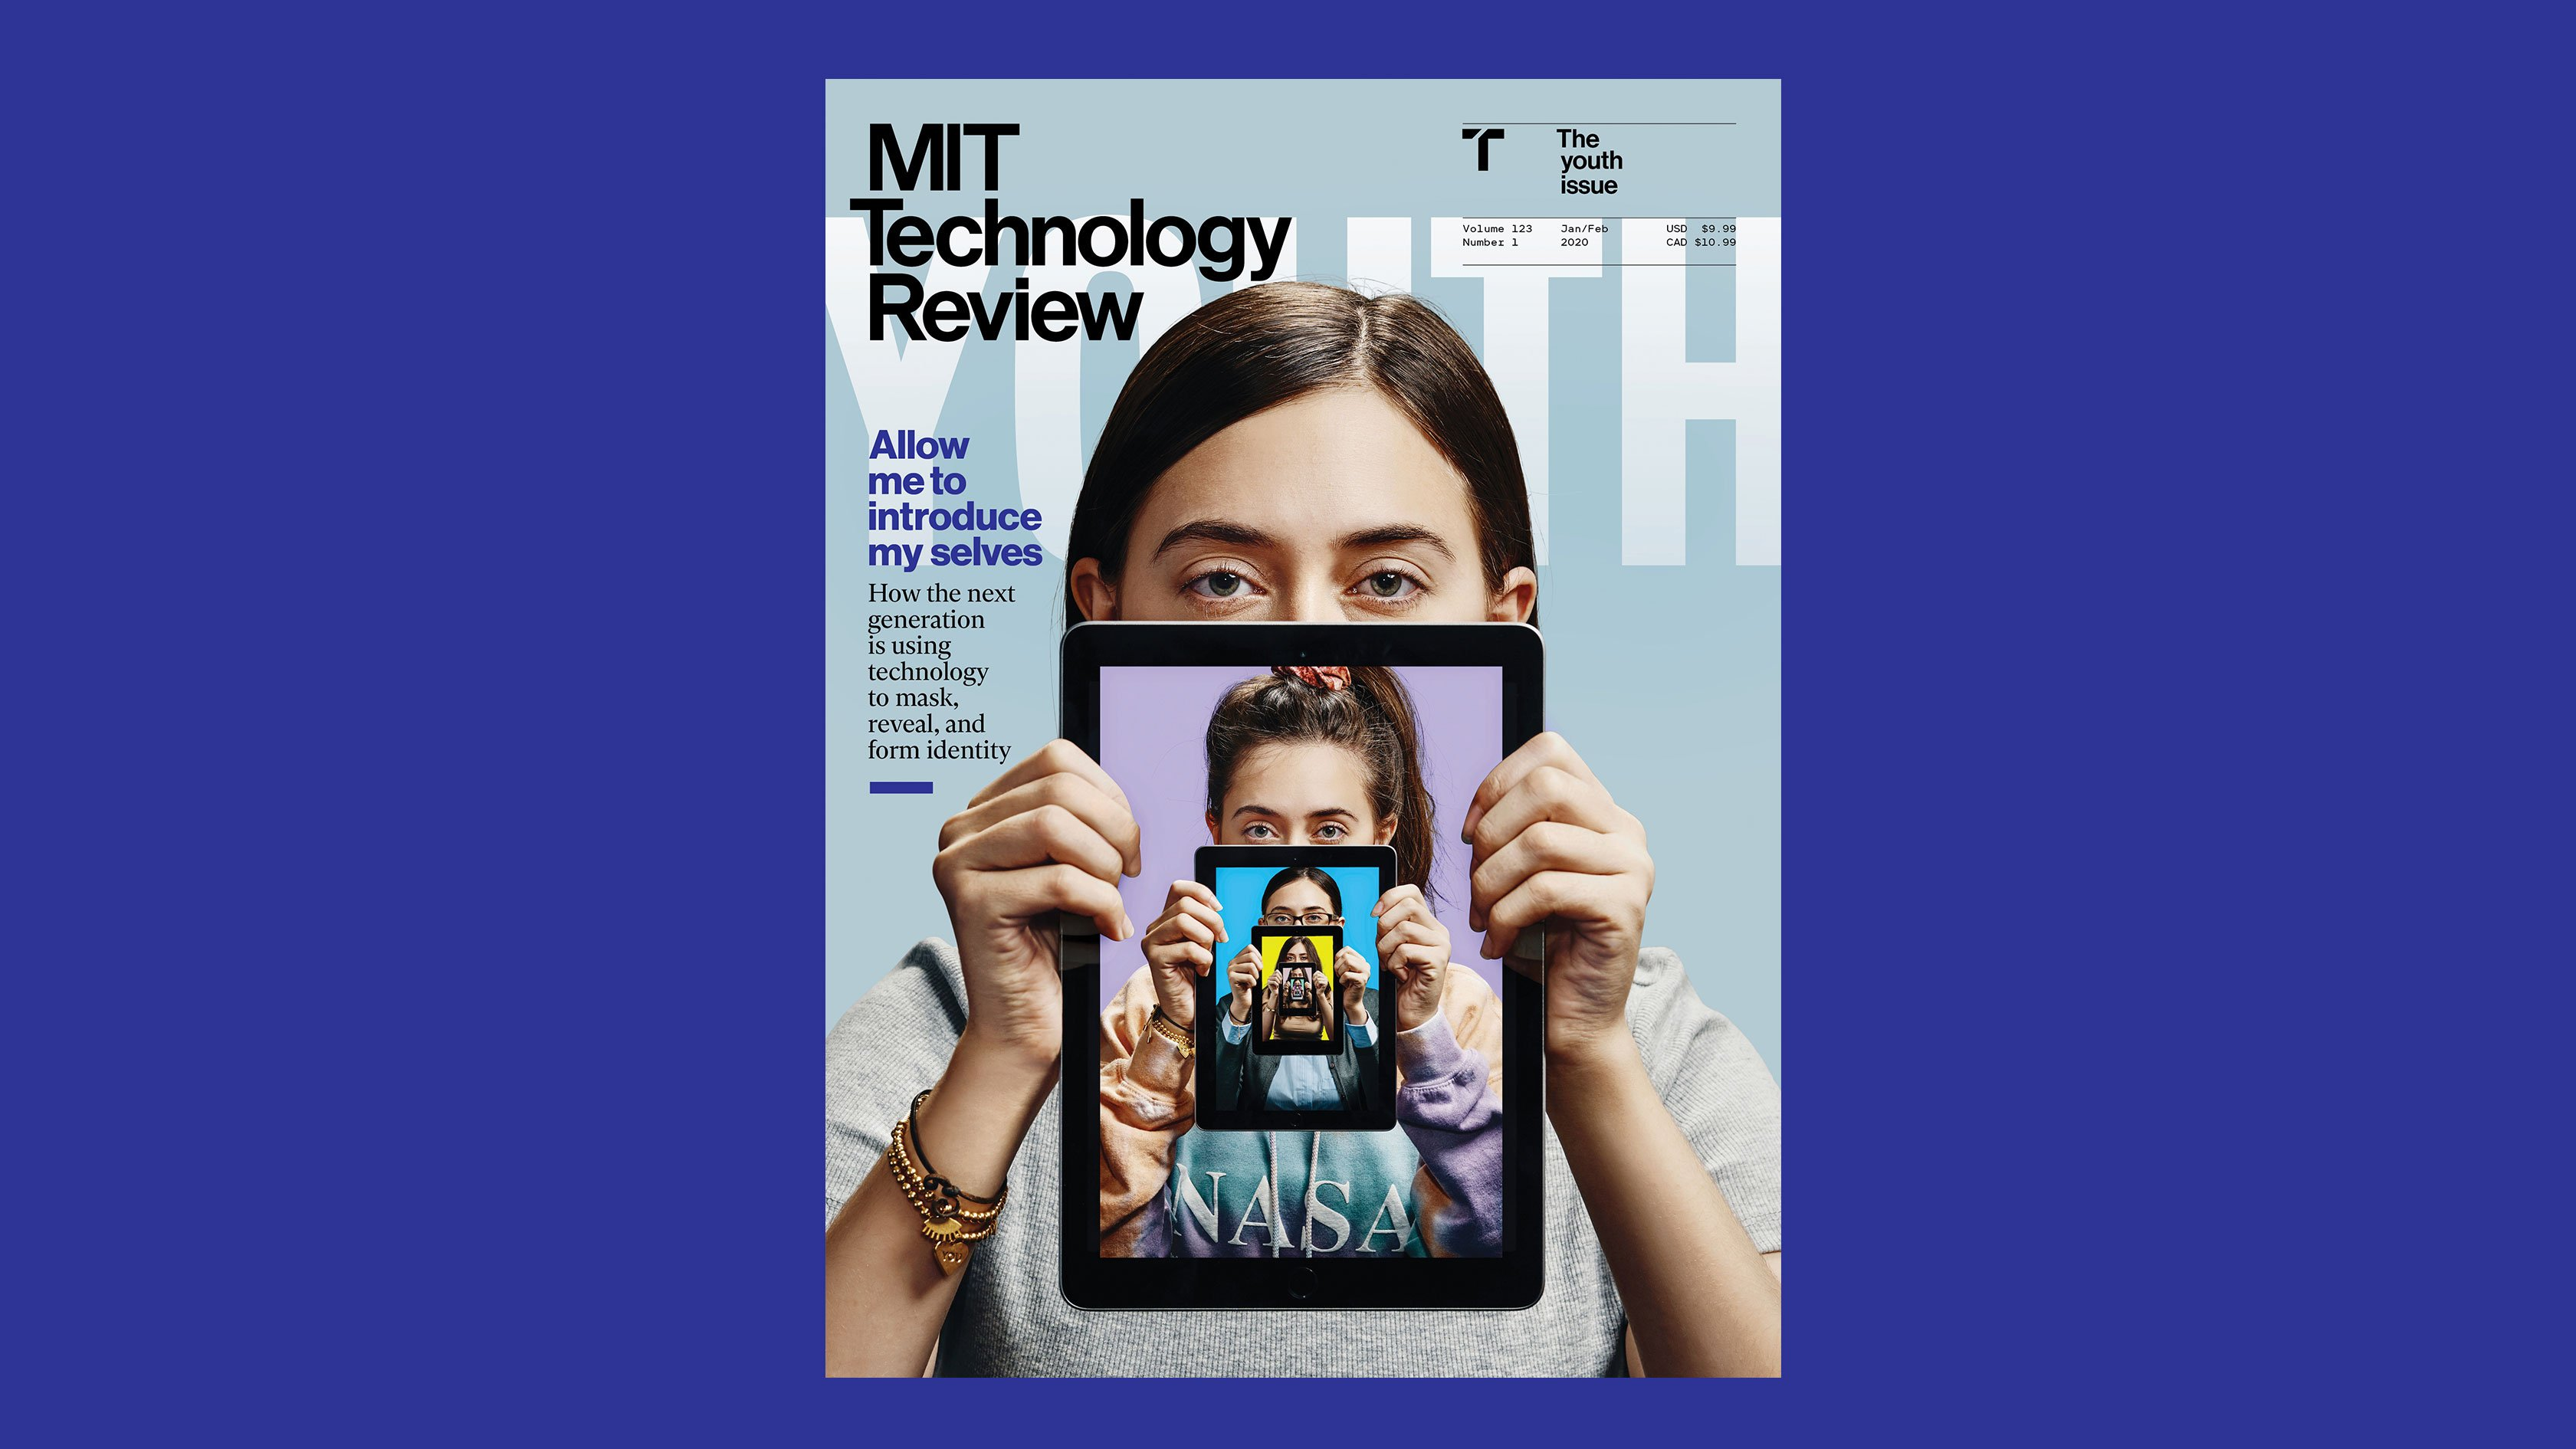 Kids and Tech: The Youth Issue  - cover